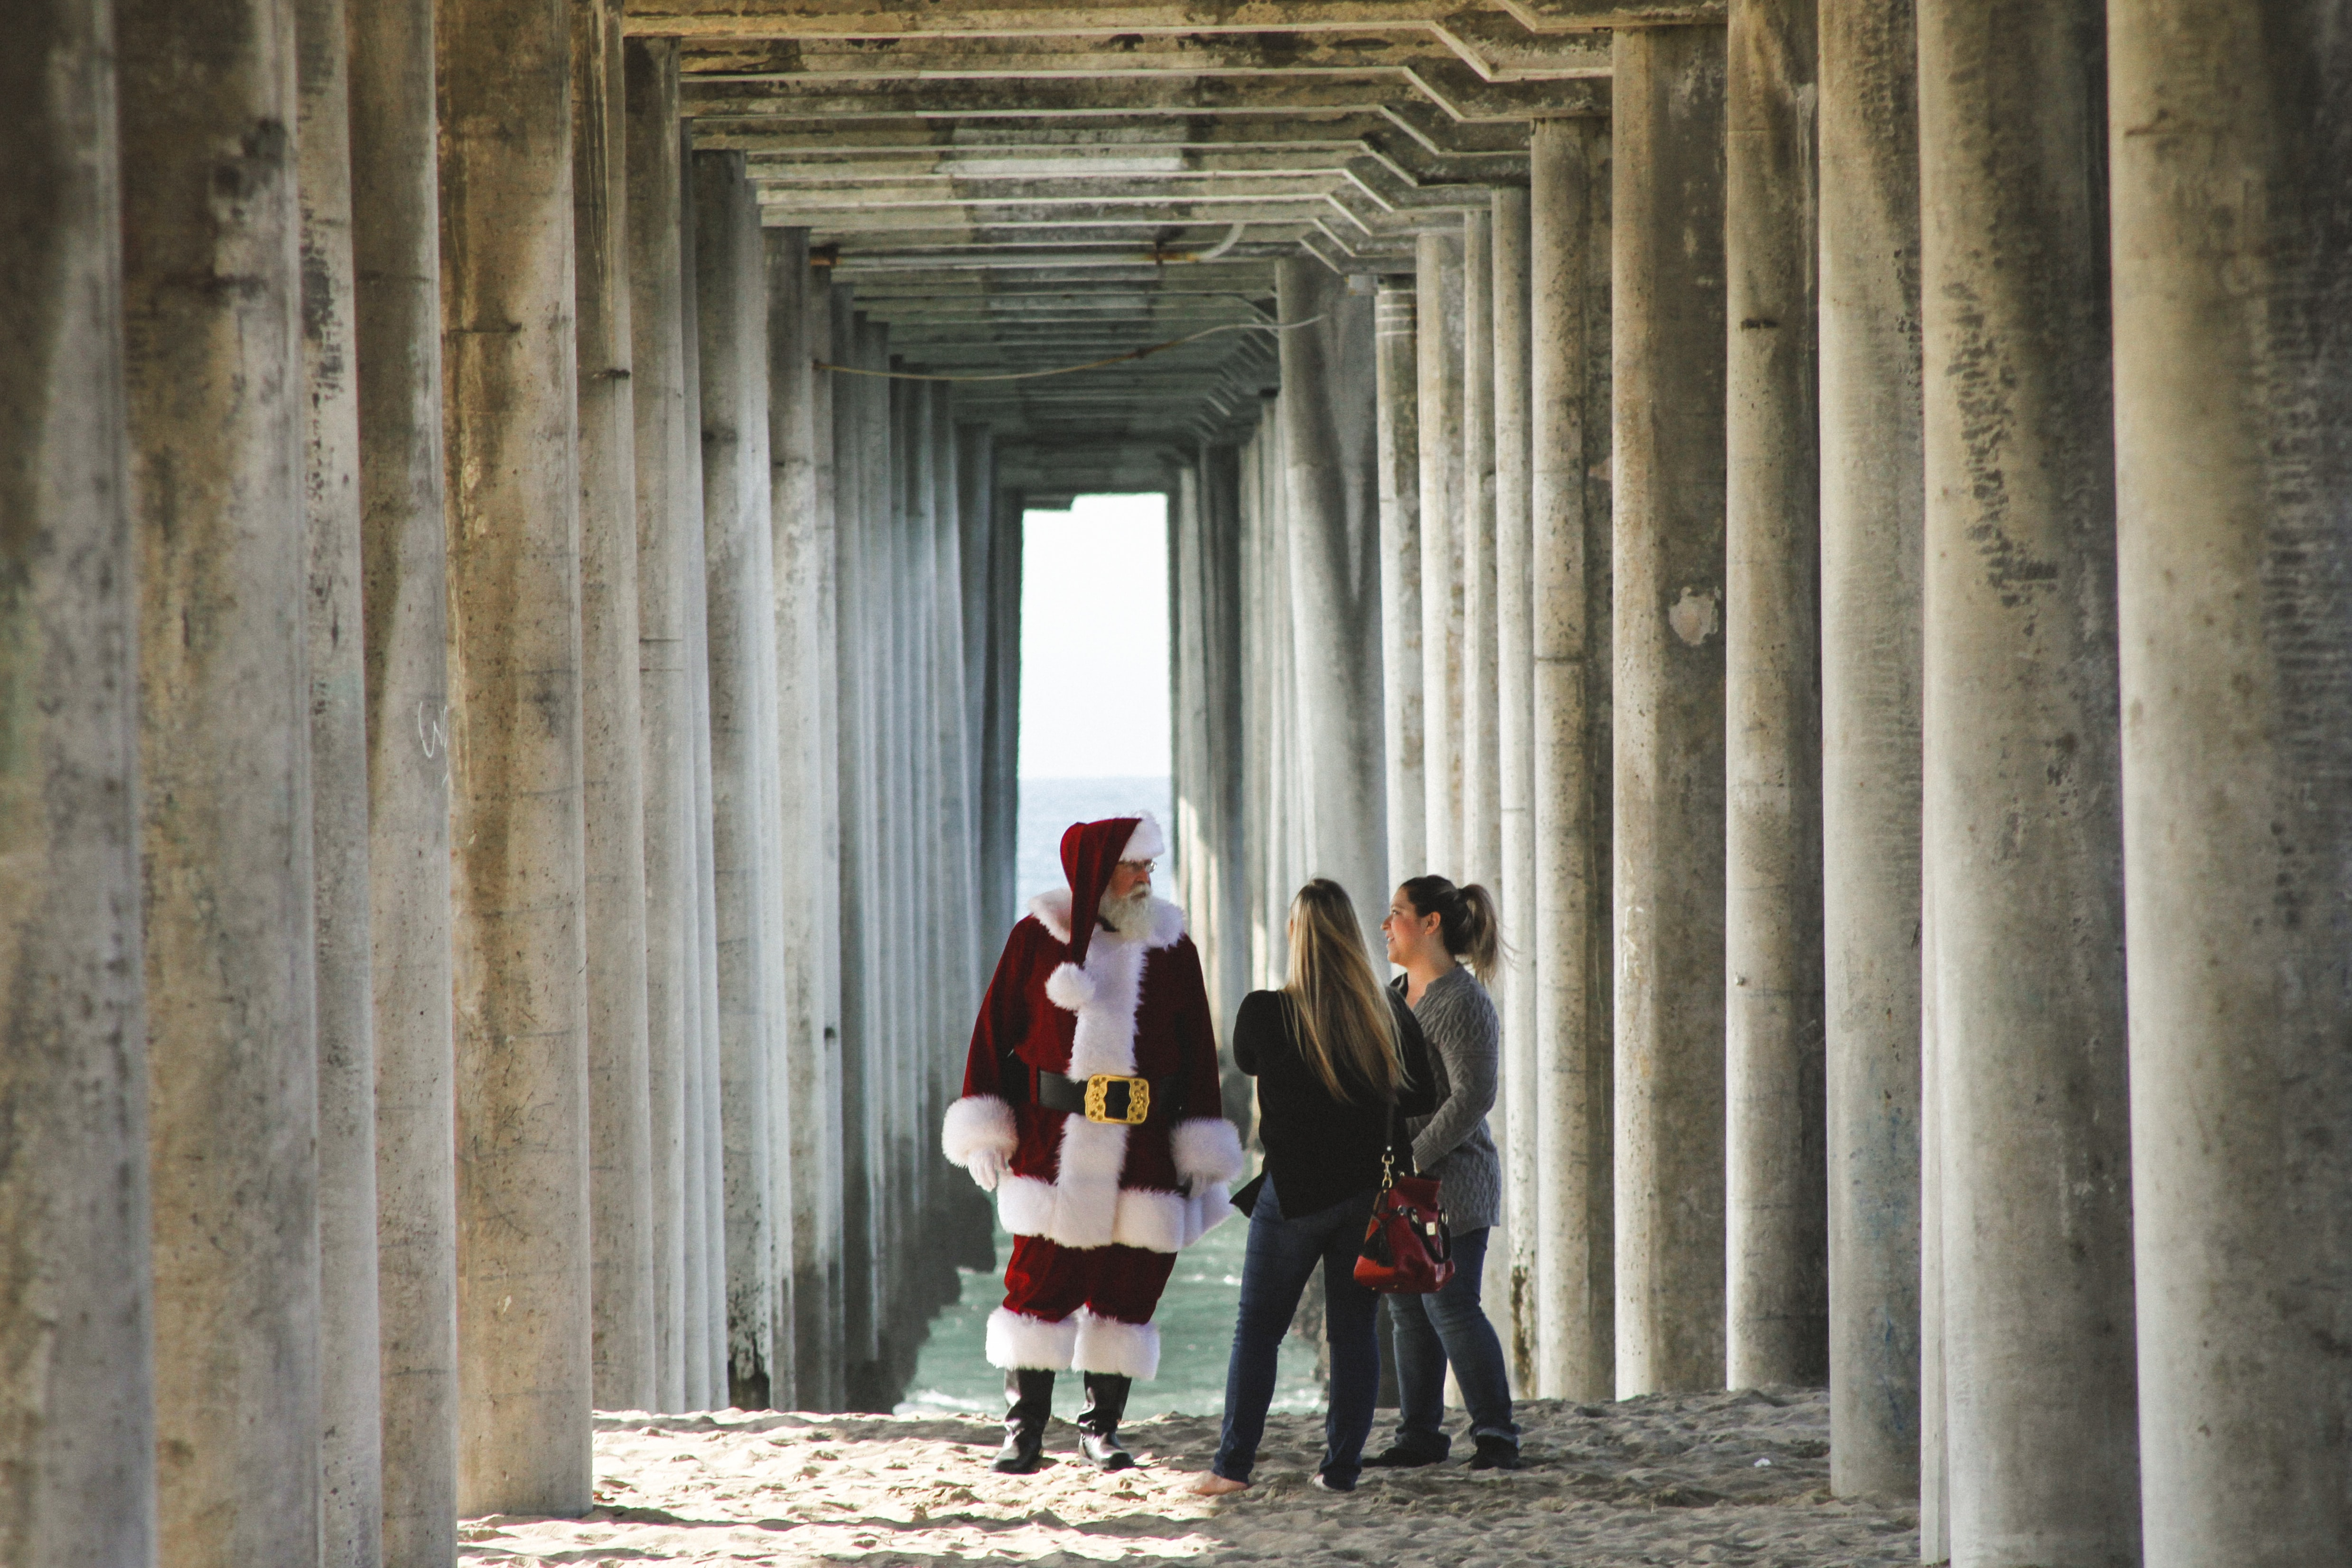 Santa Clause talking to two women under the pier at Huntington Beach